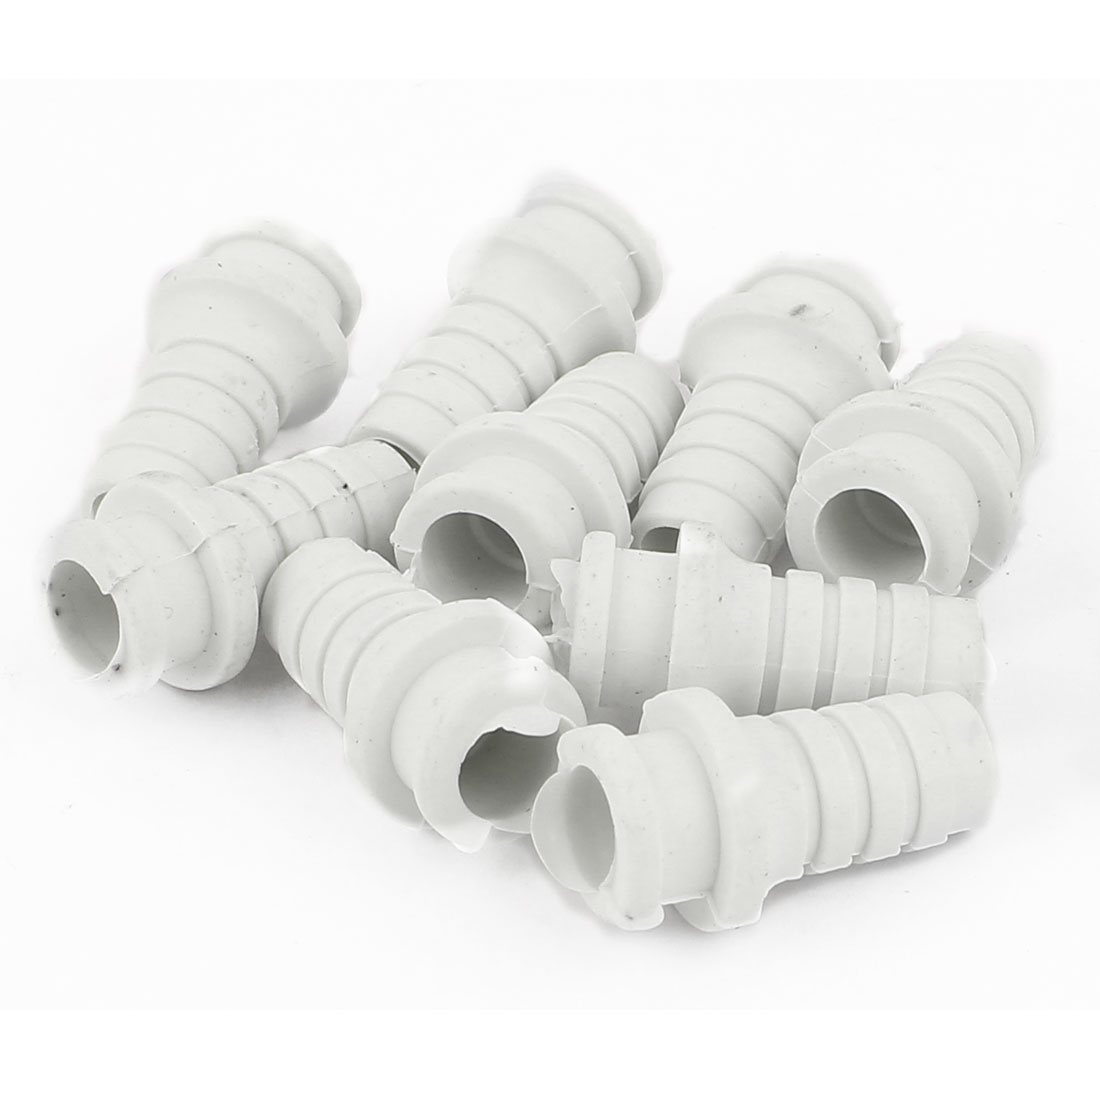 10 Pcs 7.5mm Inner Dia Rubber Strain Relief Cord Boot Protector Cable Hose White